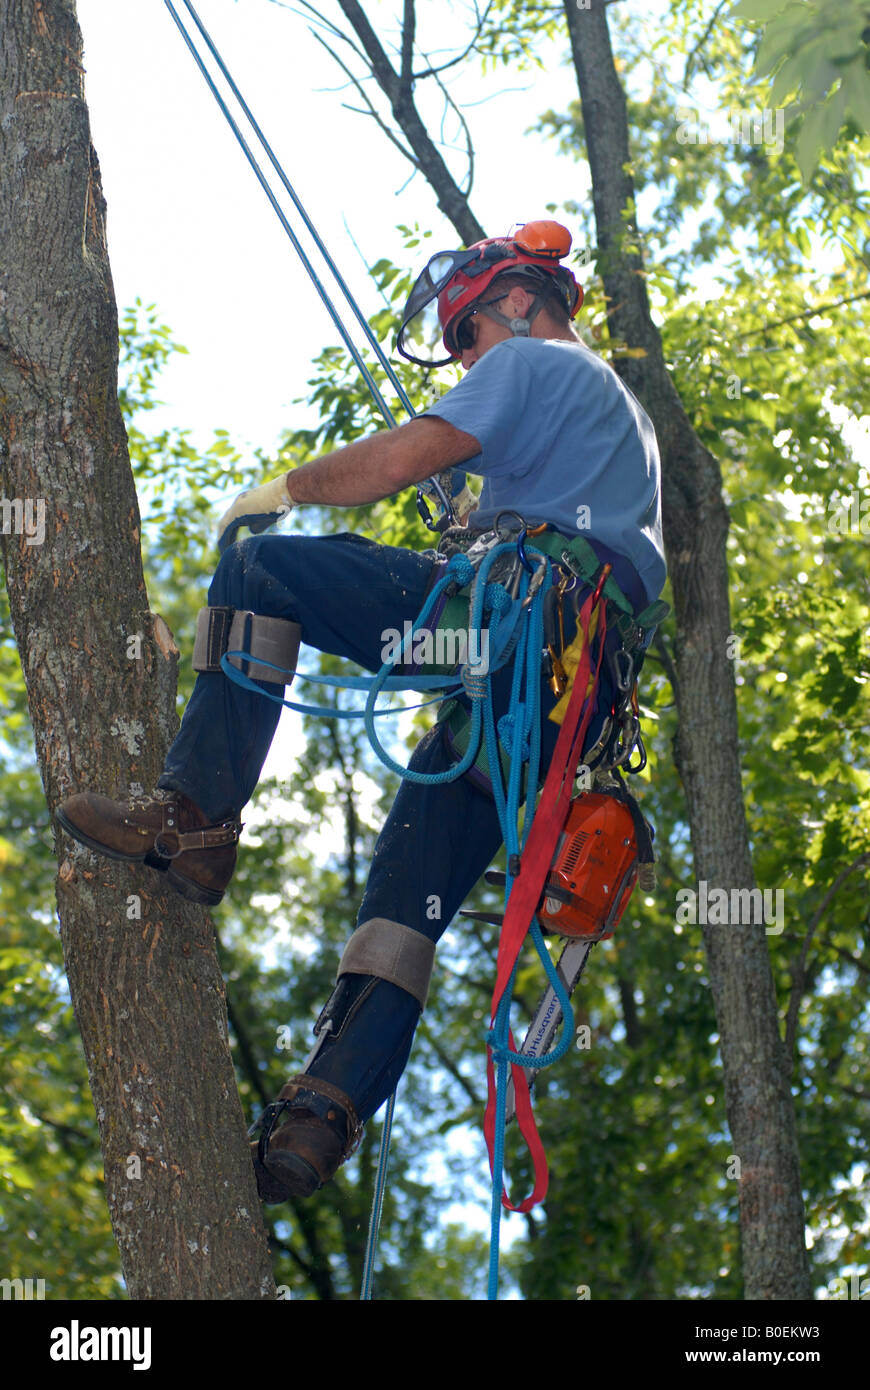 Tree surgeon up in a tree with climbing spikes protective gear ropes and harnesses and chain saw Stock Photo